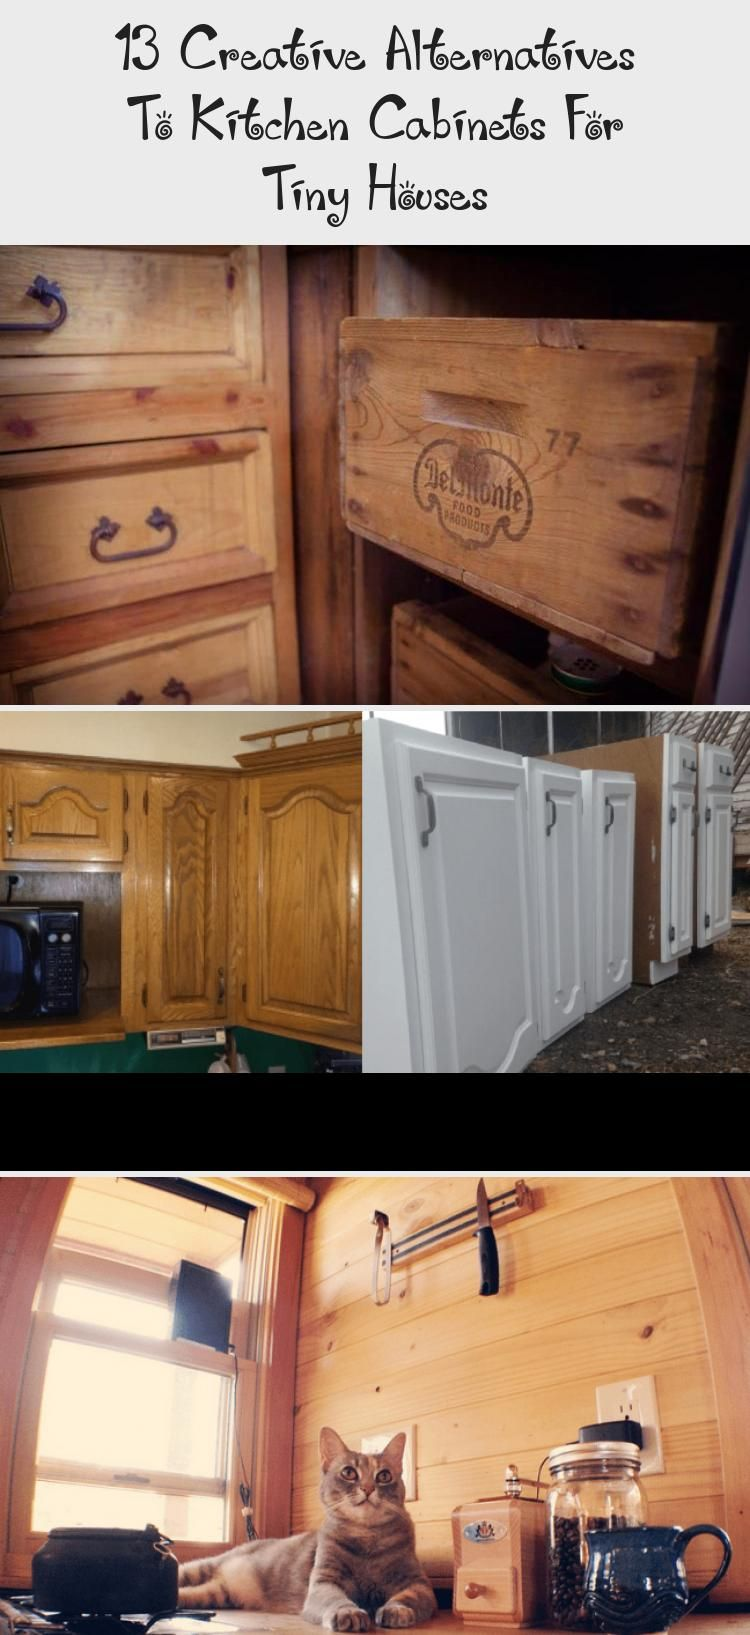 Kitchen Cabinets For Tiny Houses 13 Alternative Designs Tinyhousediycheapdesign In 2020 Kitchen Cupboard Designs Kitchen Cabinets Tiny House